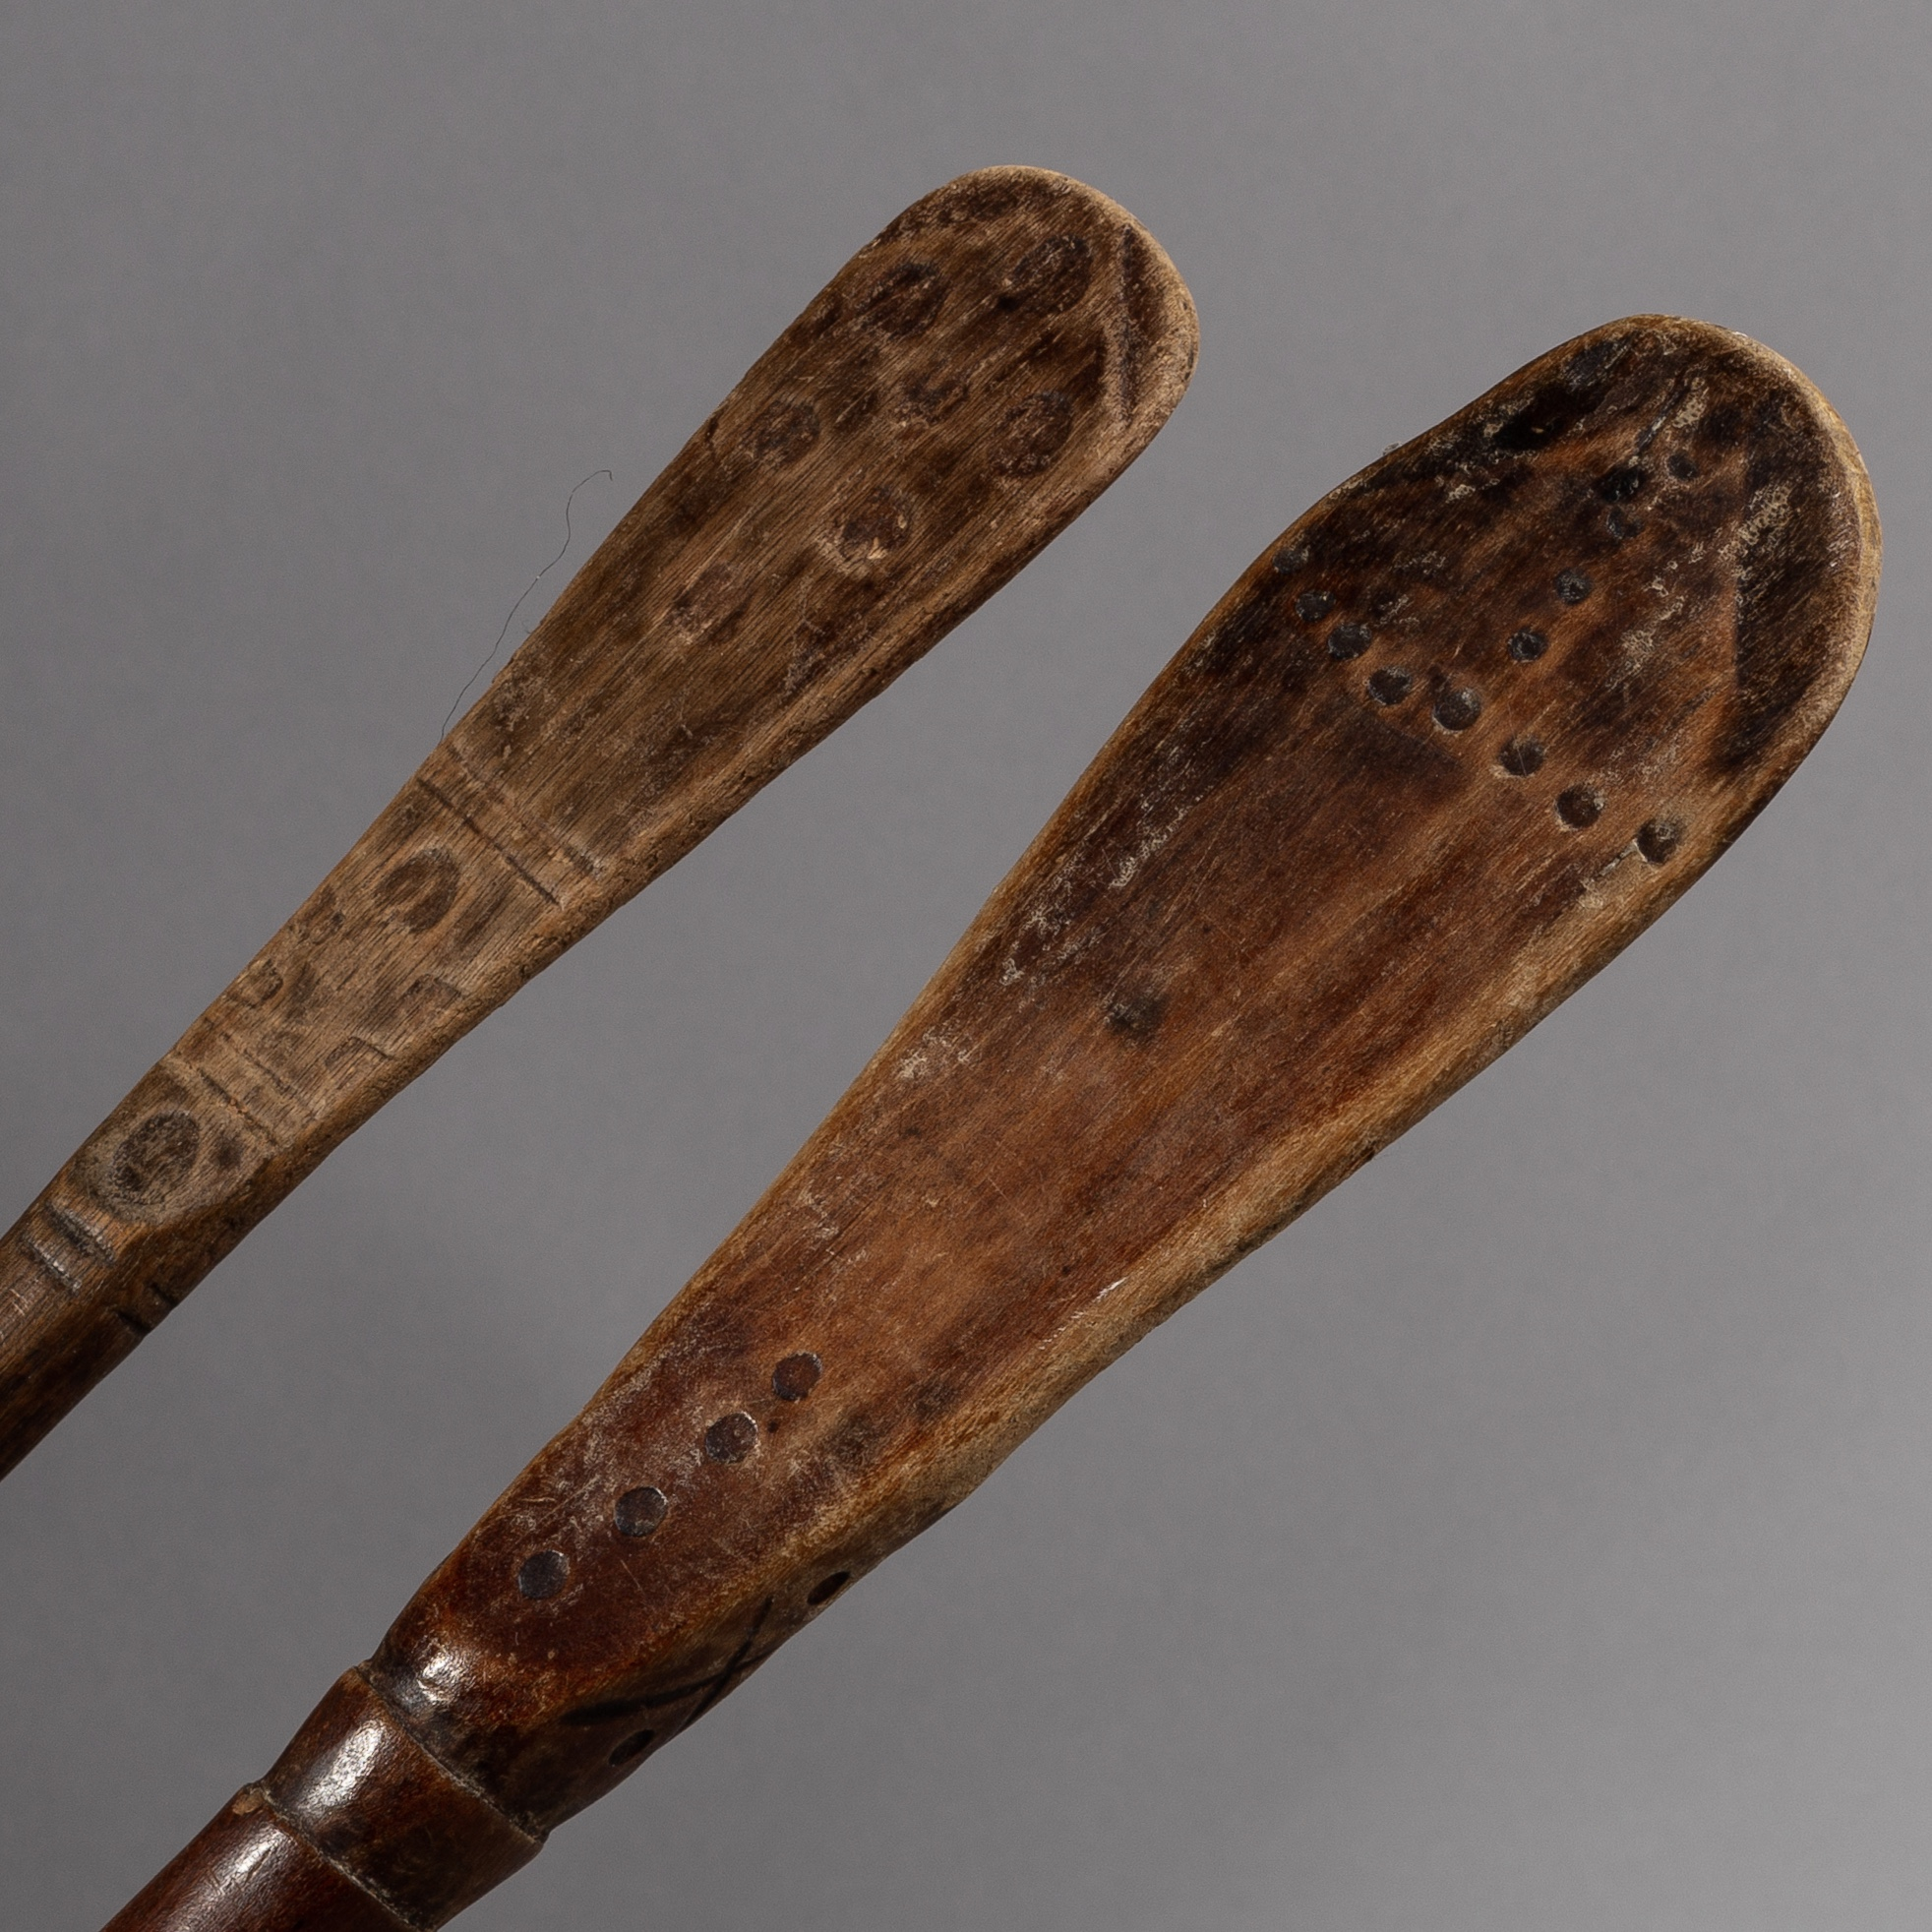 2 SPOONS FROM THE LOVALE TRIBE  OF ZAMBIA  ( No 1731 )